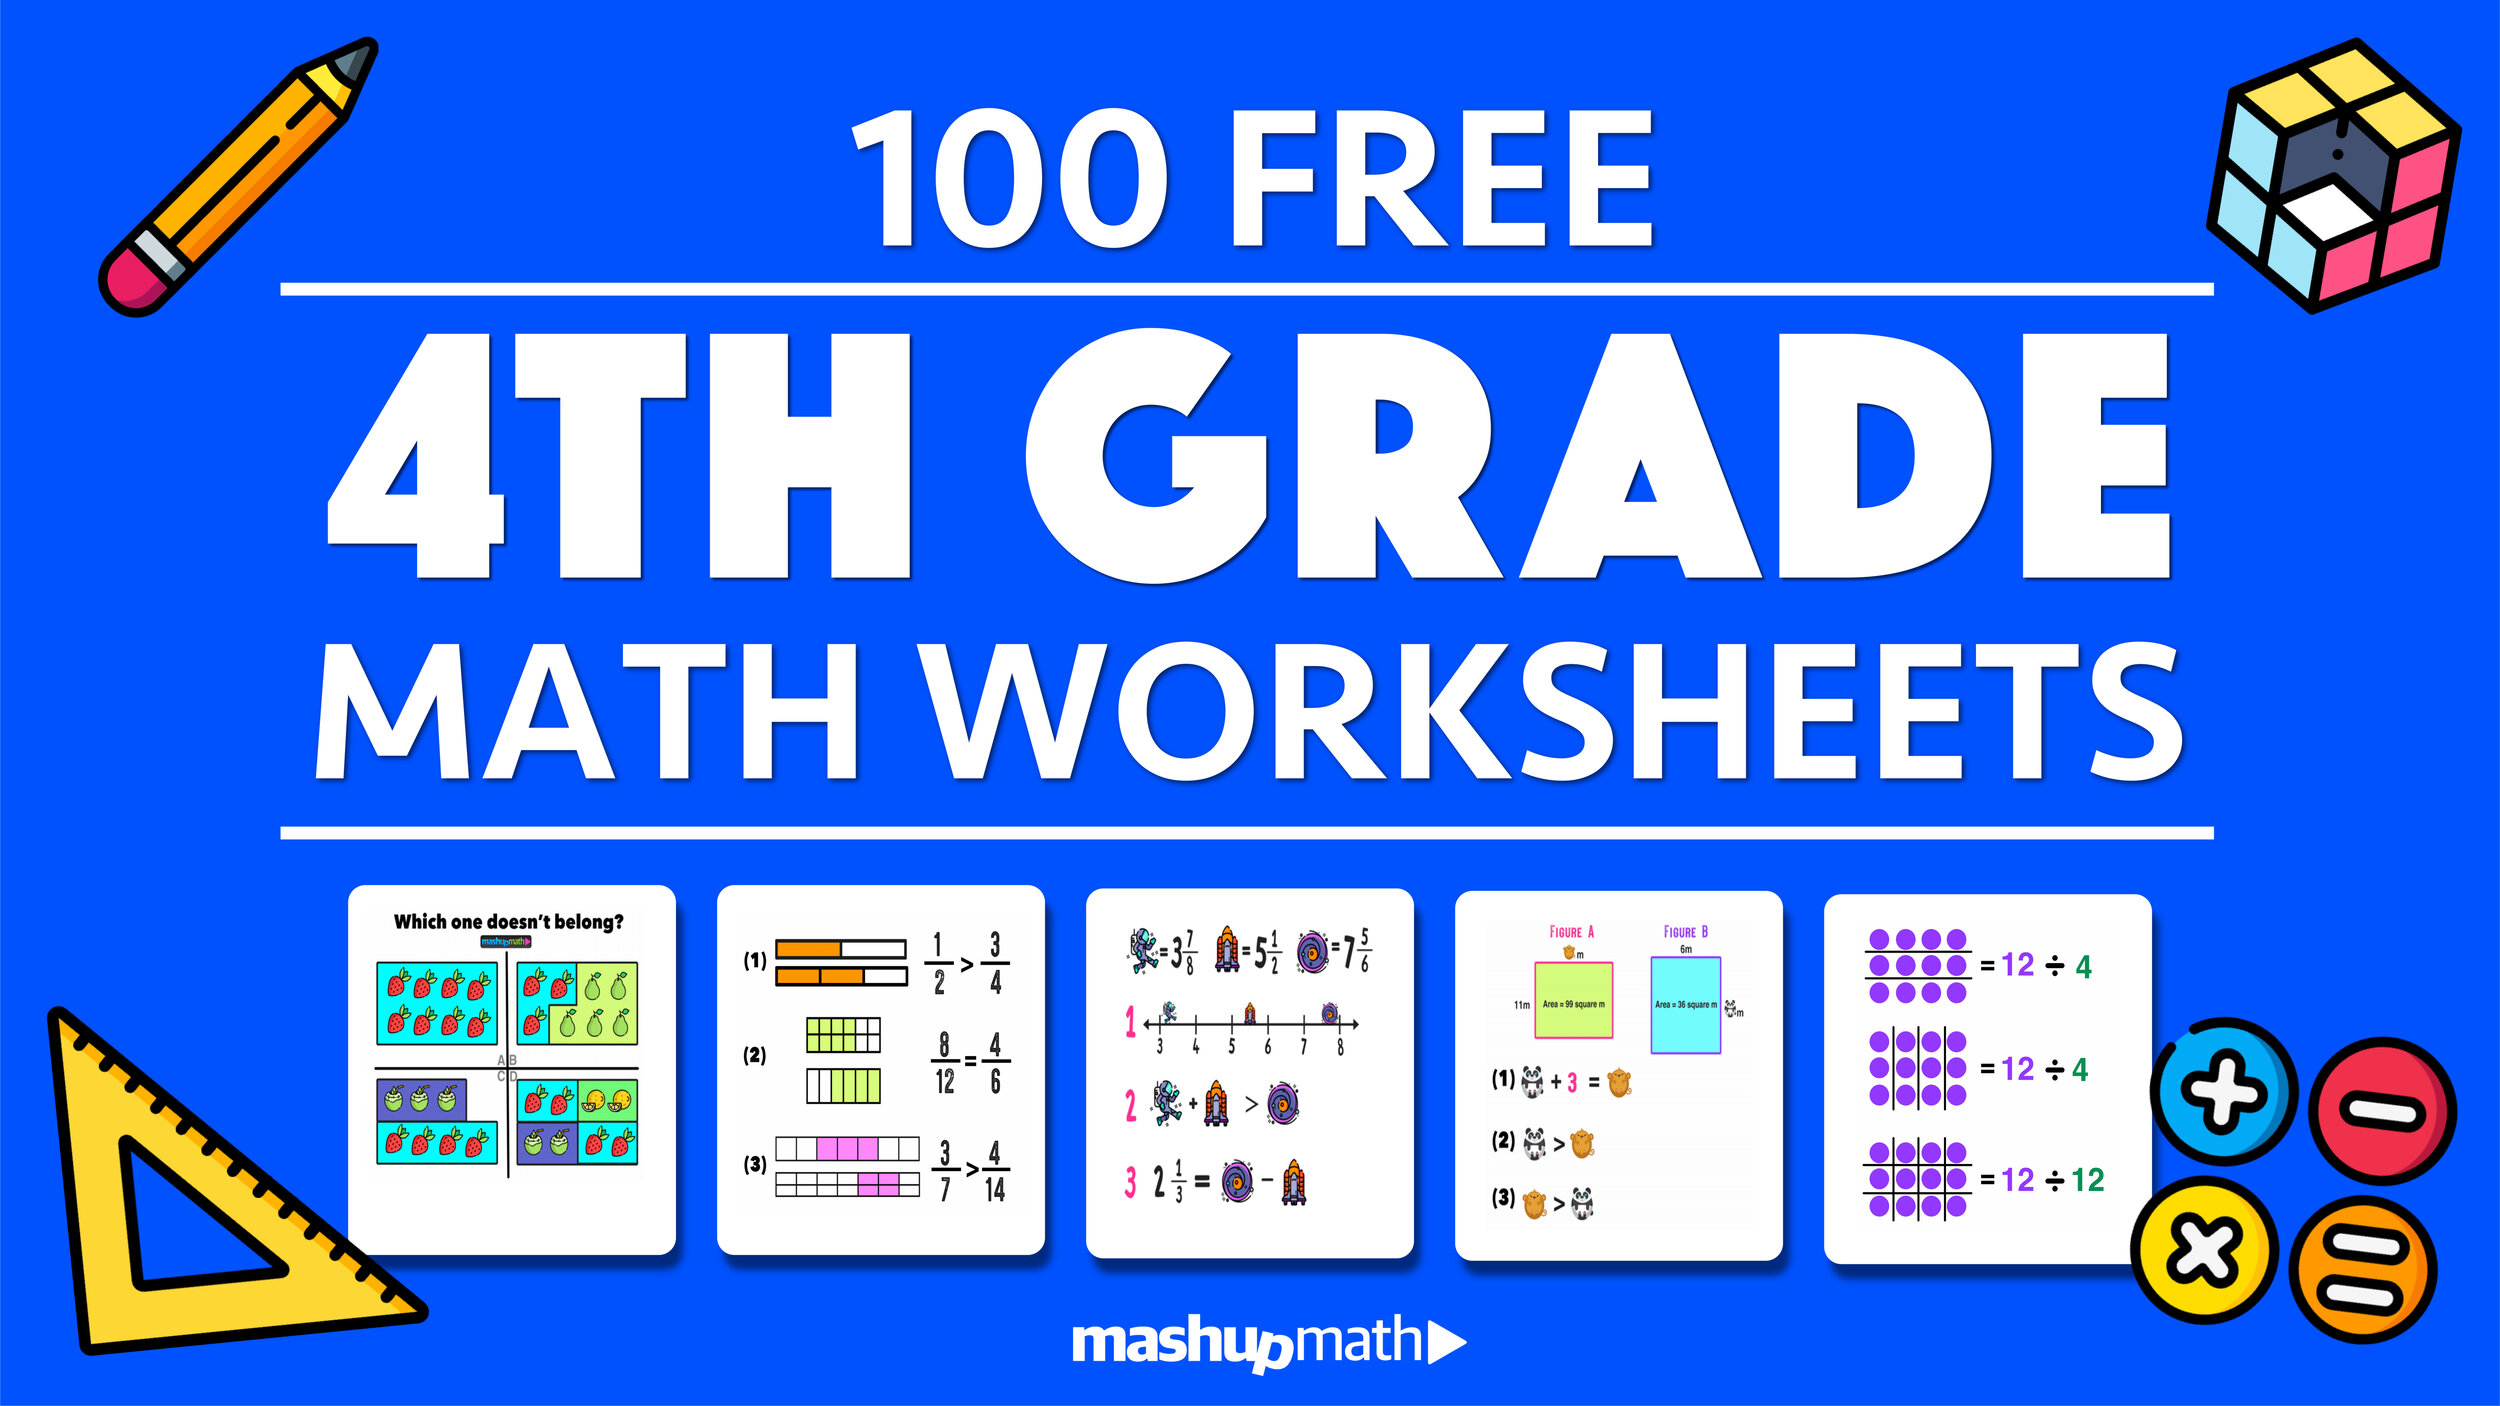 100 Free 4th Grade Math Worksheets with Answers — Mashup Math [ 844 x 1500 Pixel ]